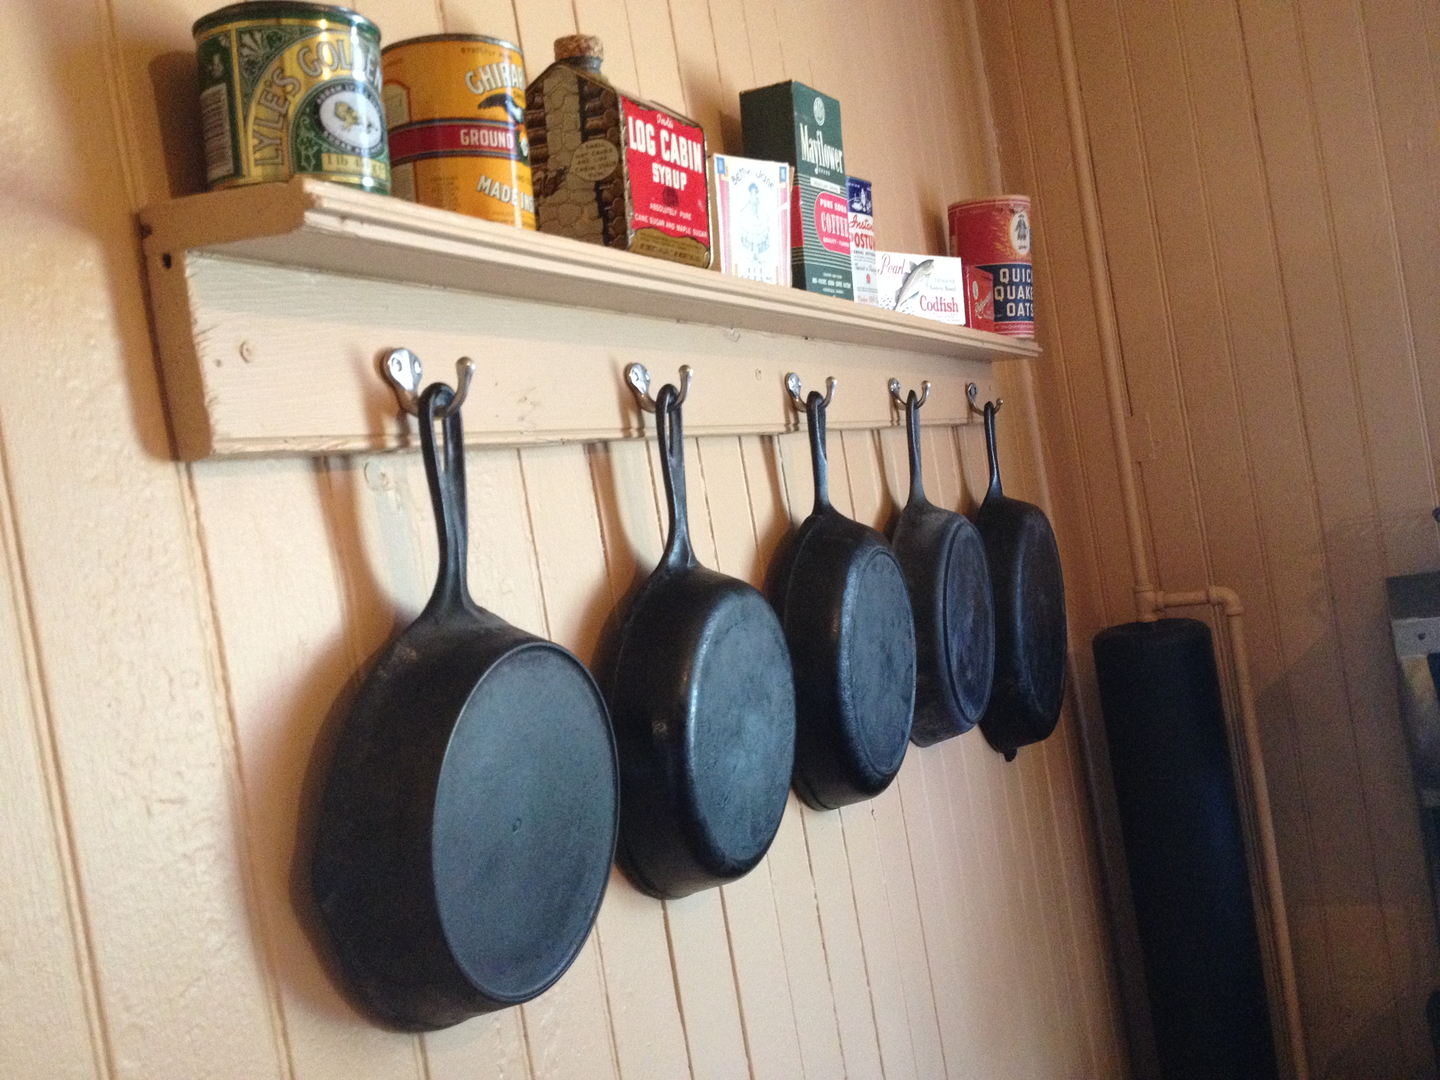 Cast Iron Pans Hanging in the Kitchen